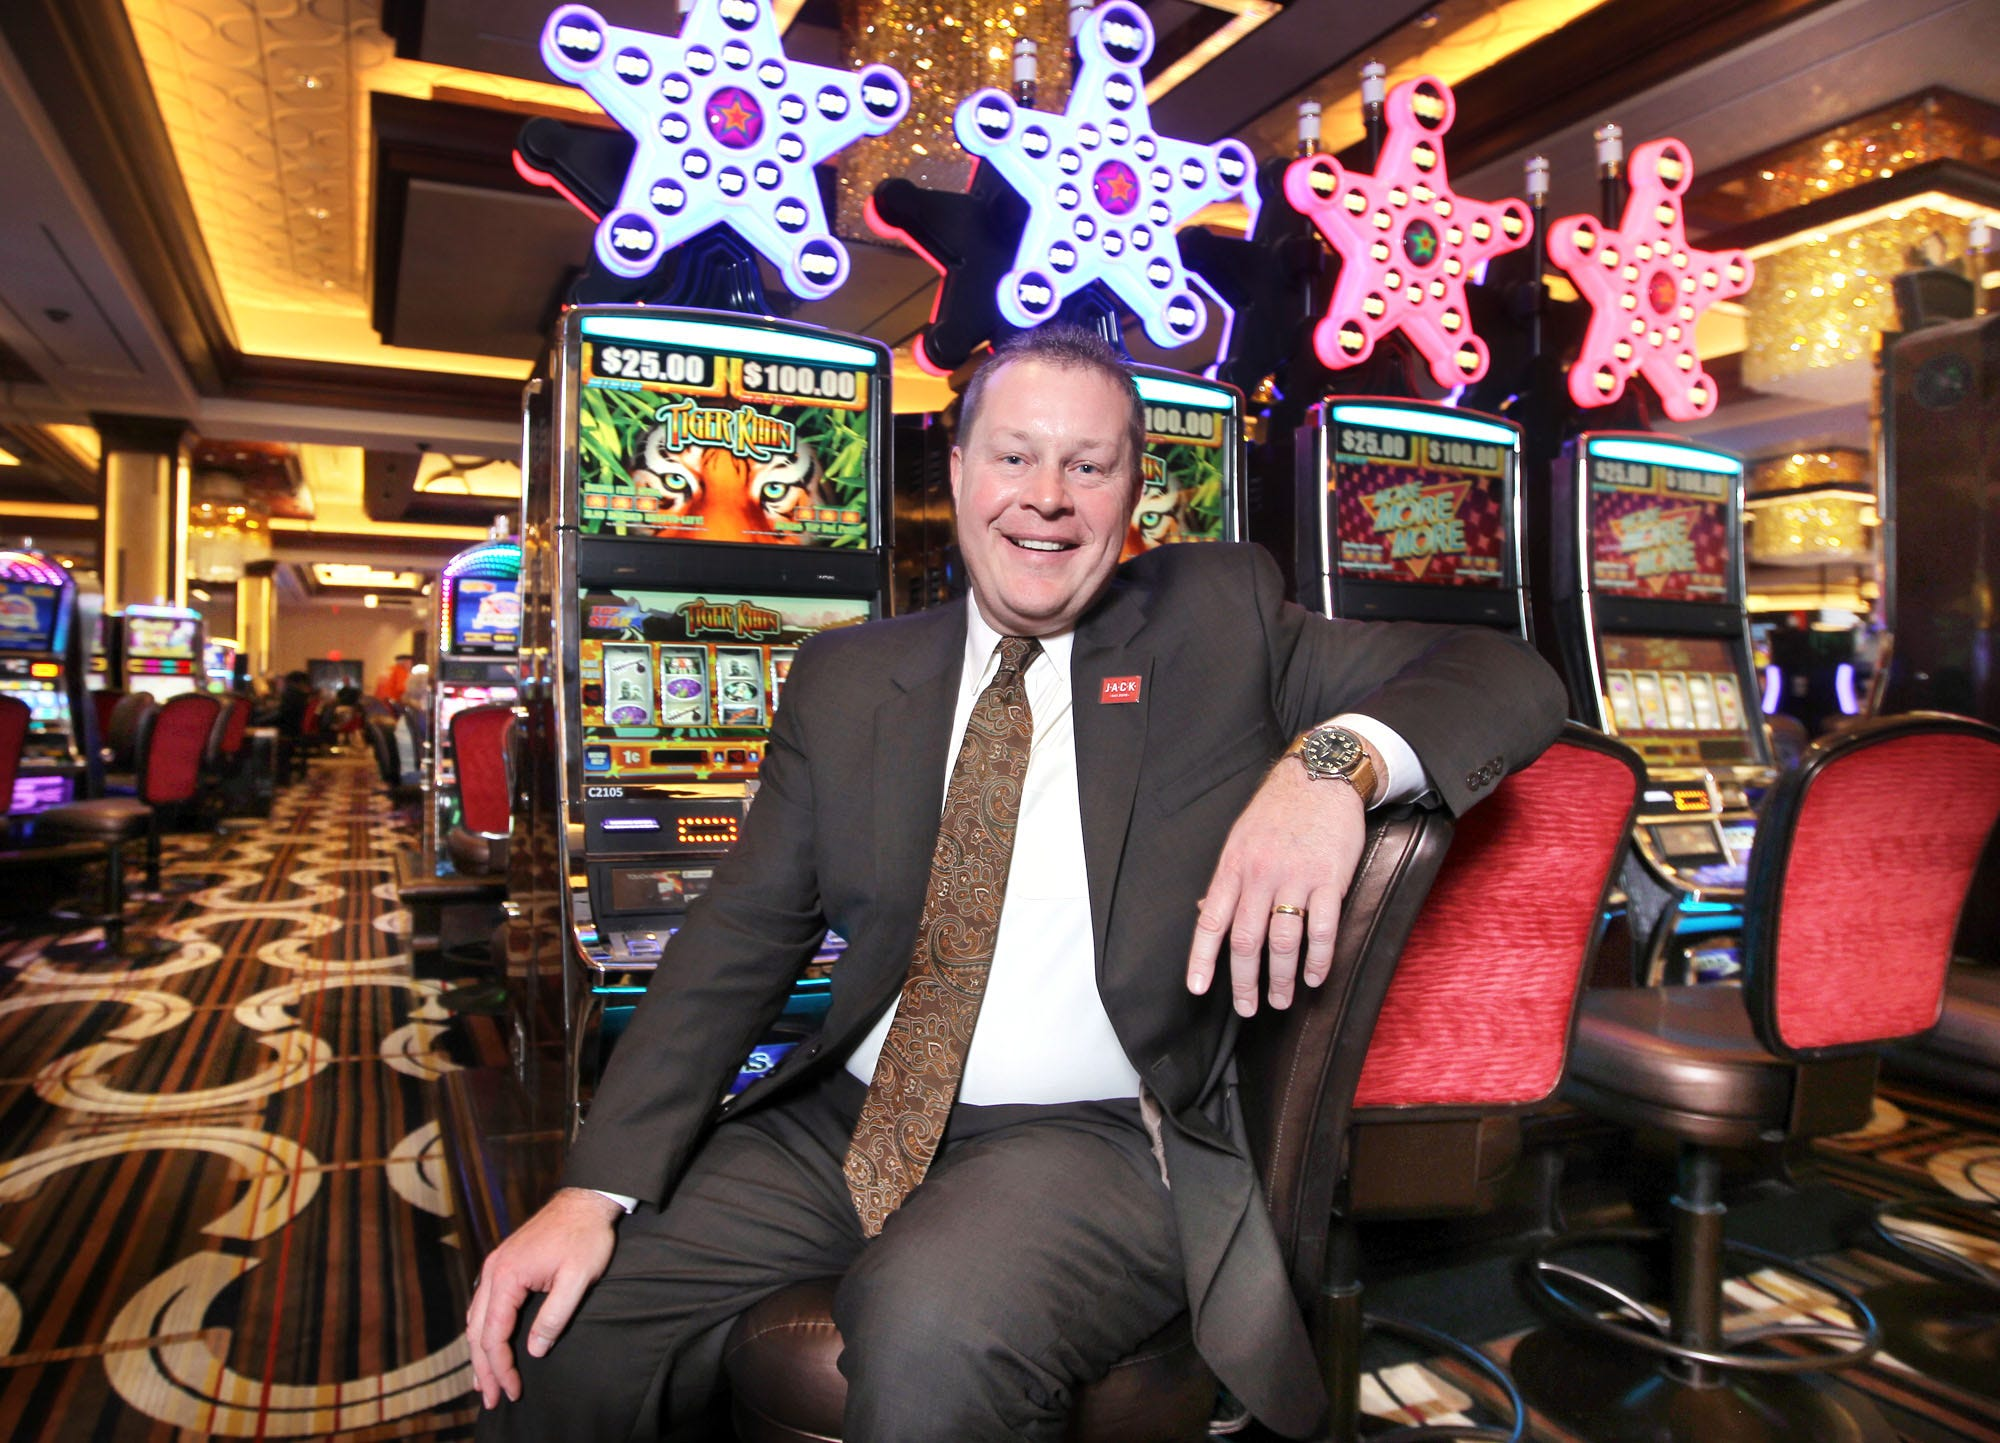 Become part owner in a casino napoleons casinos co uk